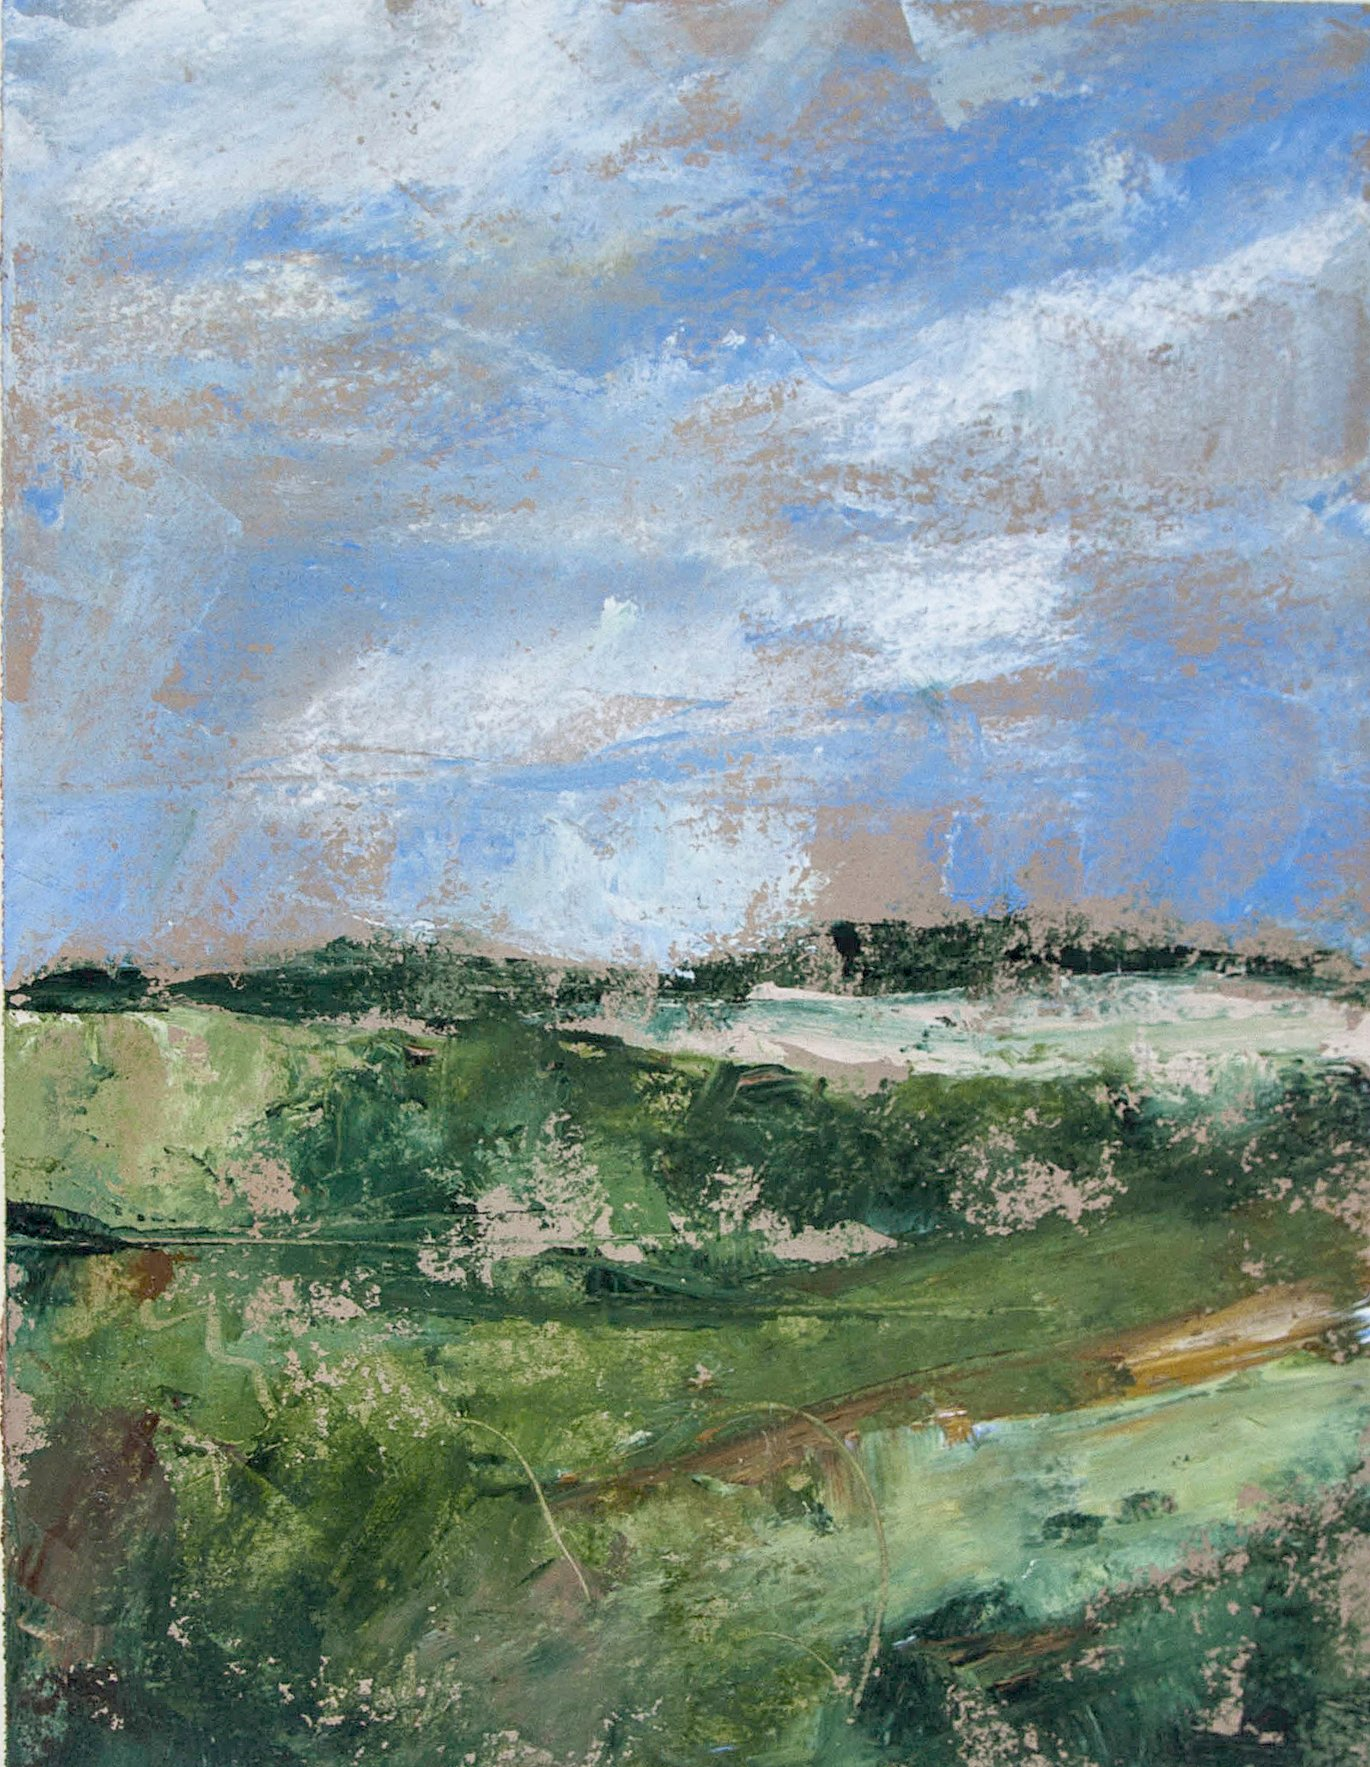 July (4) – Oil sketch